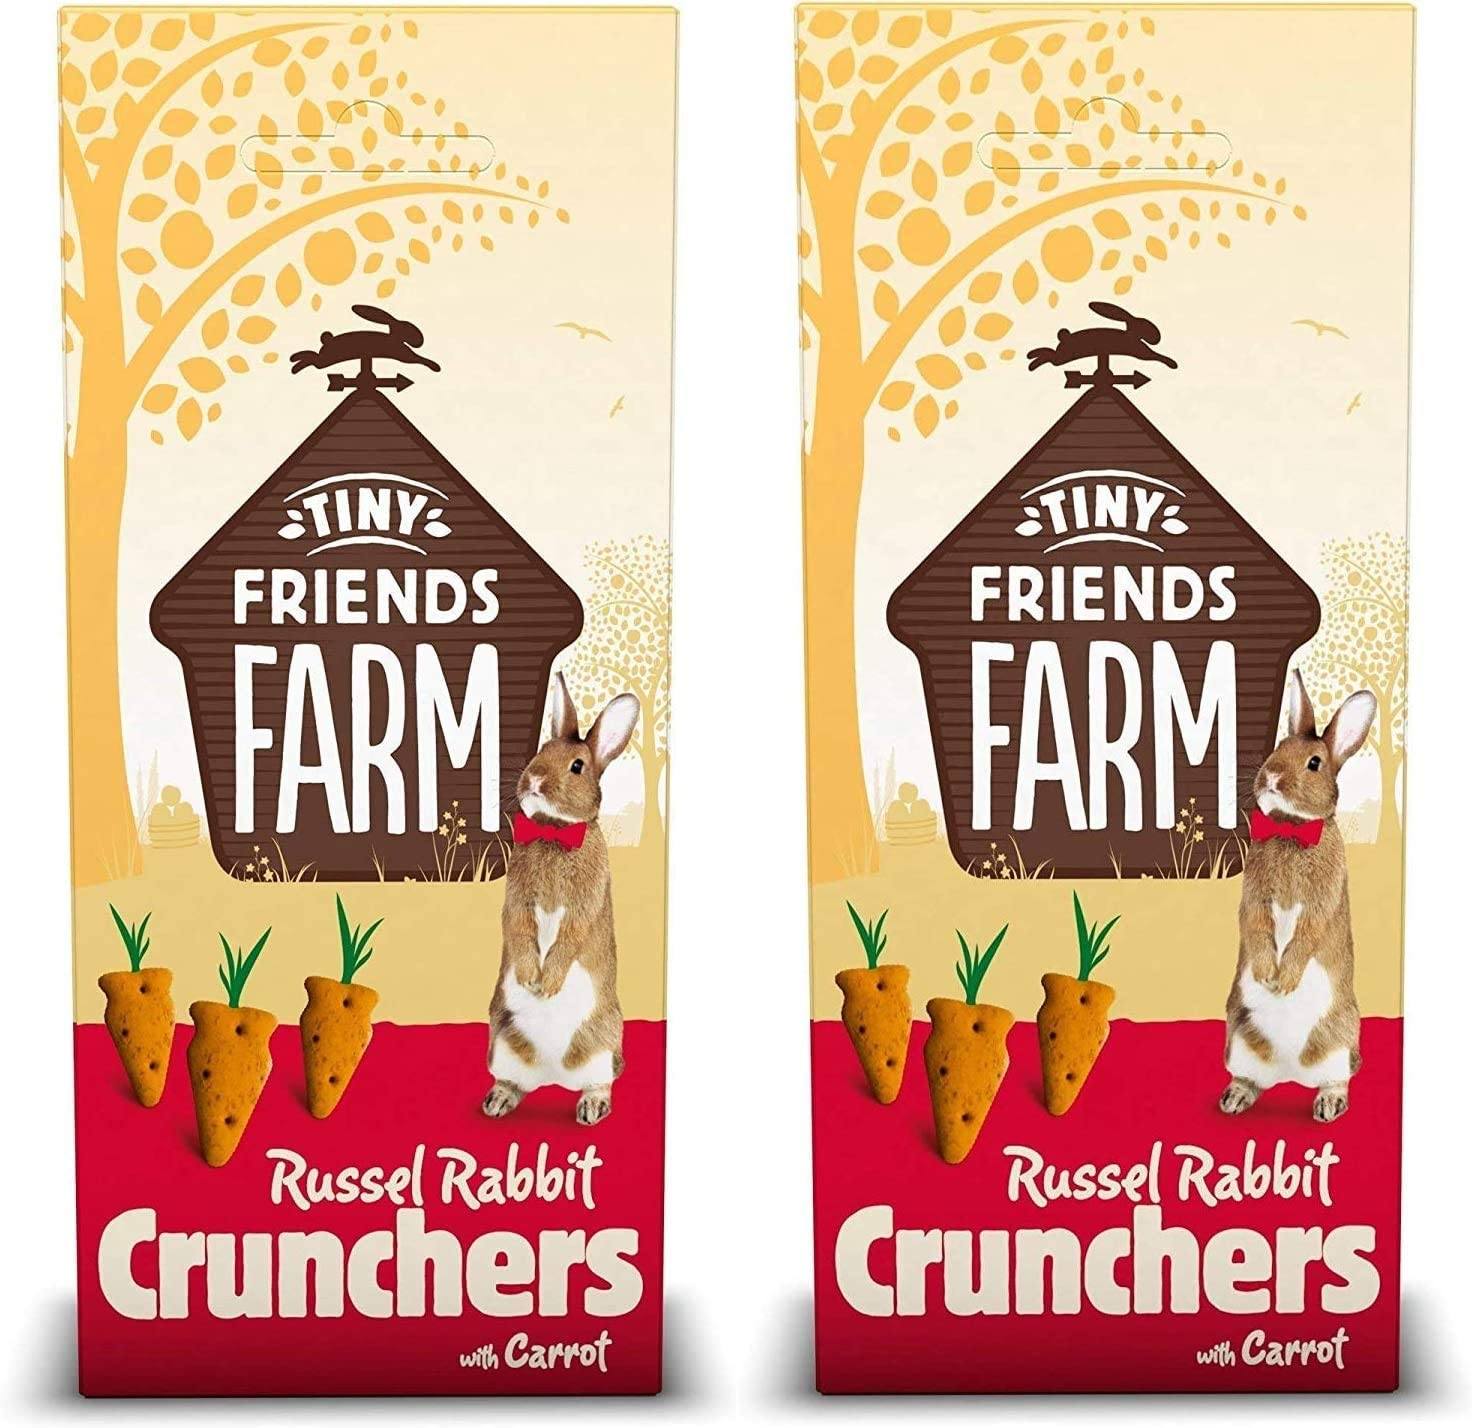 SupremePetfoods Tiny Friends Farm Russel Rabbit Crunchers with Carrot 4.2 oz - Pack of 2